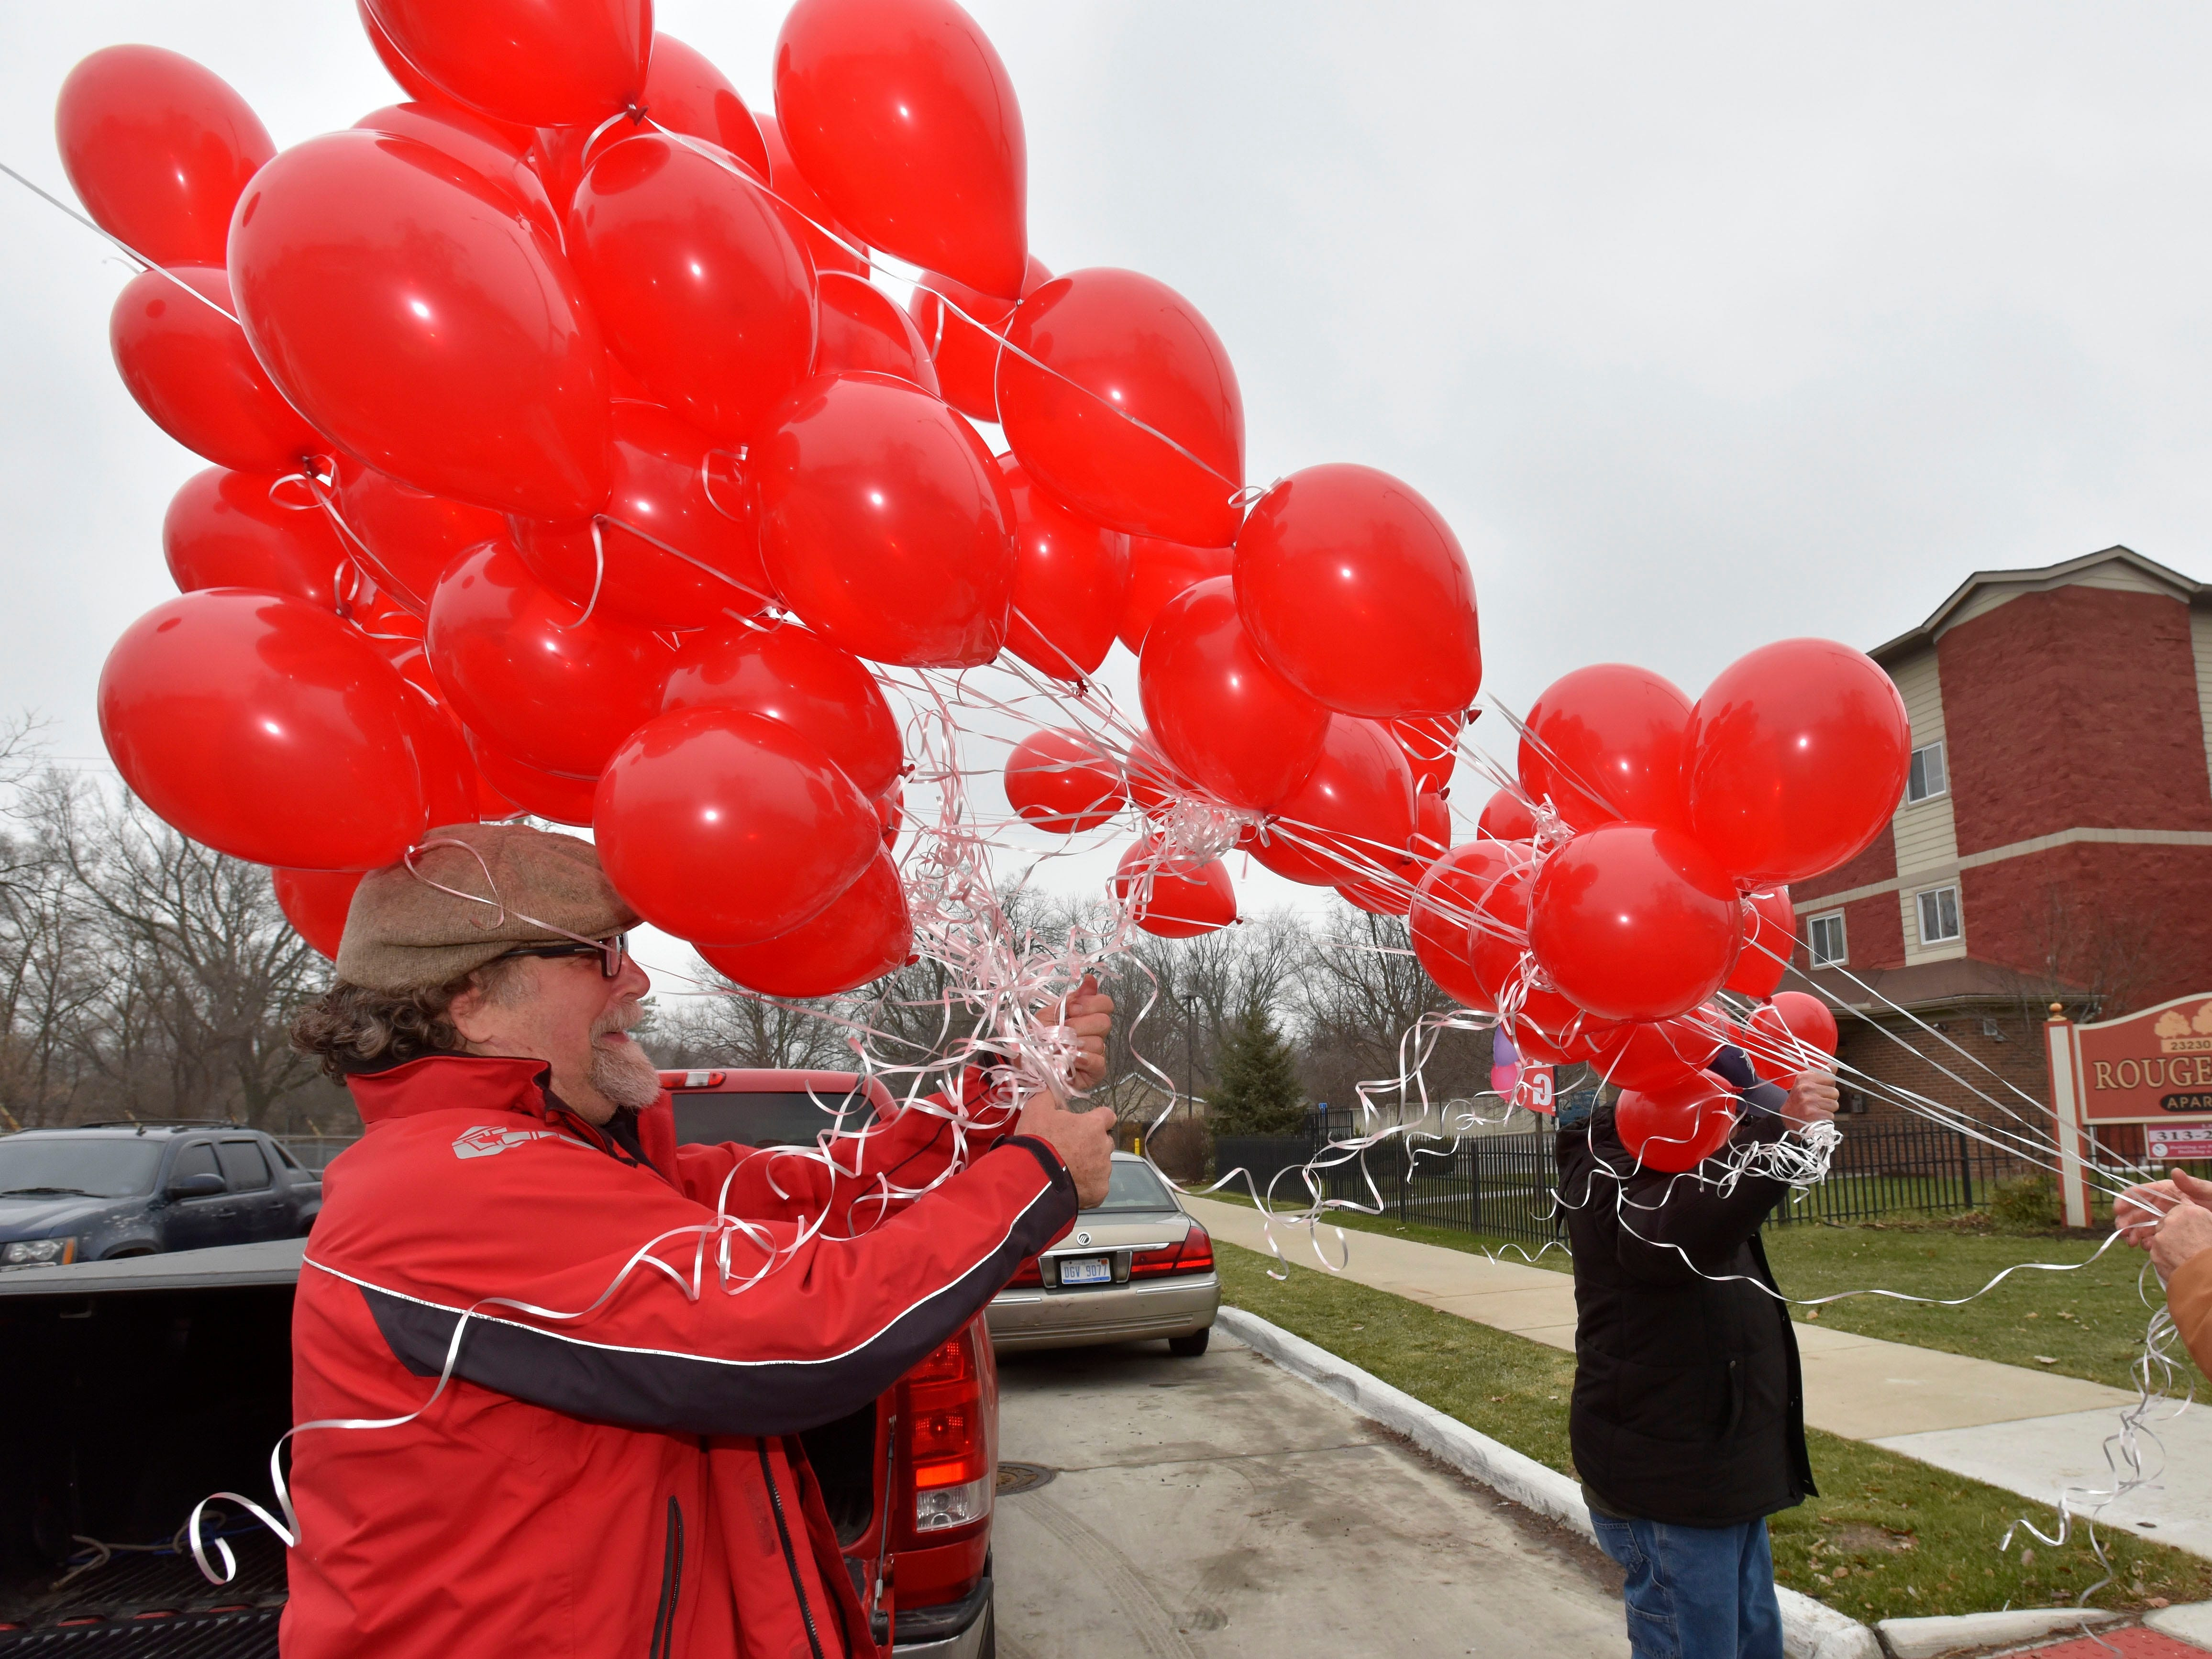 Detroit Eviction Defense member Richard Shackelford, left, of Detroit, delivers six dozen red balloons to protesters. KMG Prestige Management Company officials had posted red balloons on the residences of Brightmoor Homes late-rent payers.